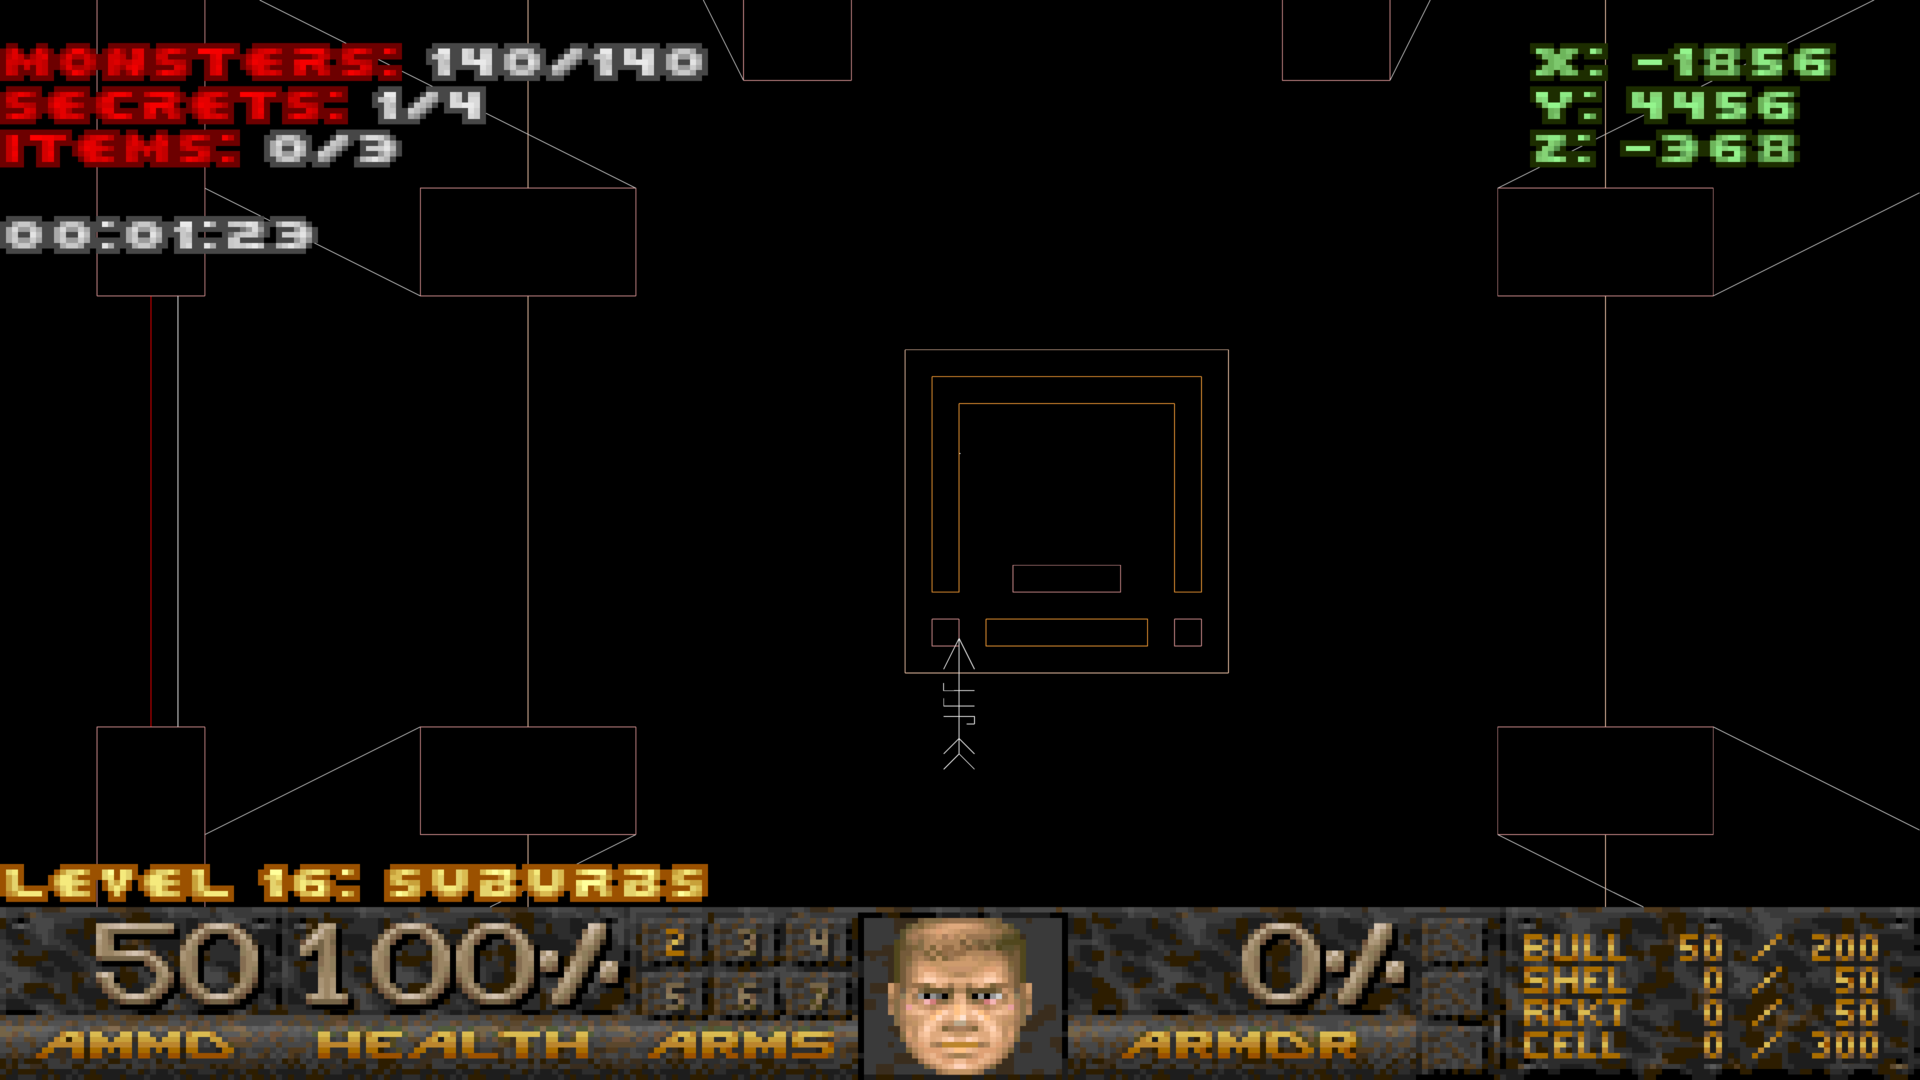 doom02.png.0aefcf4d43ce5fe838fabfd1a7ab3d6b.png